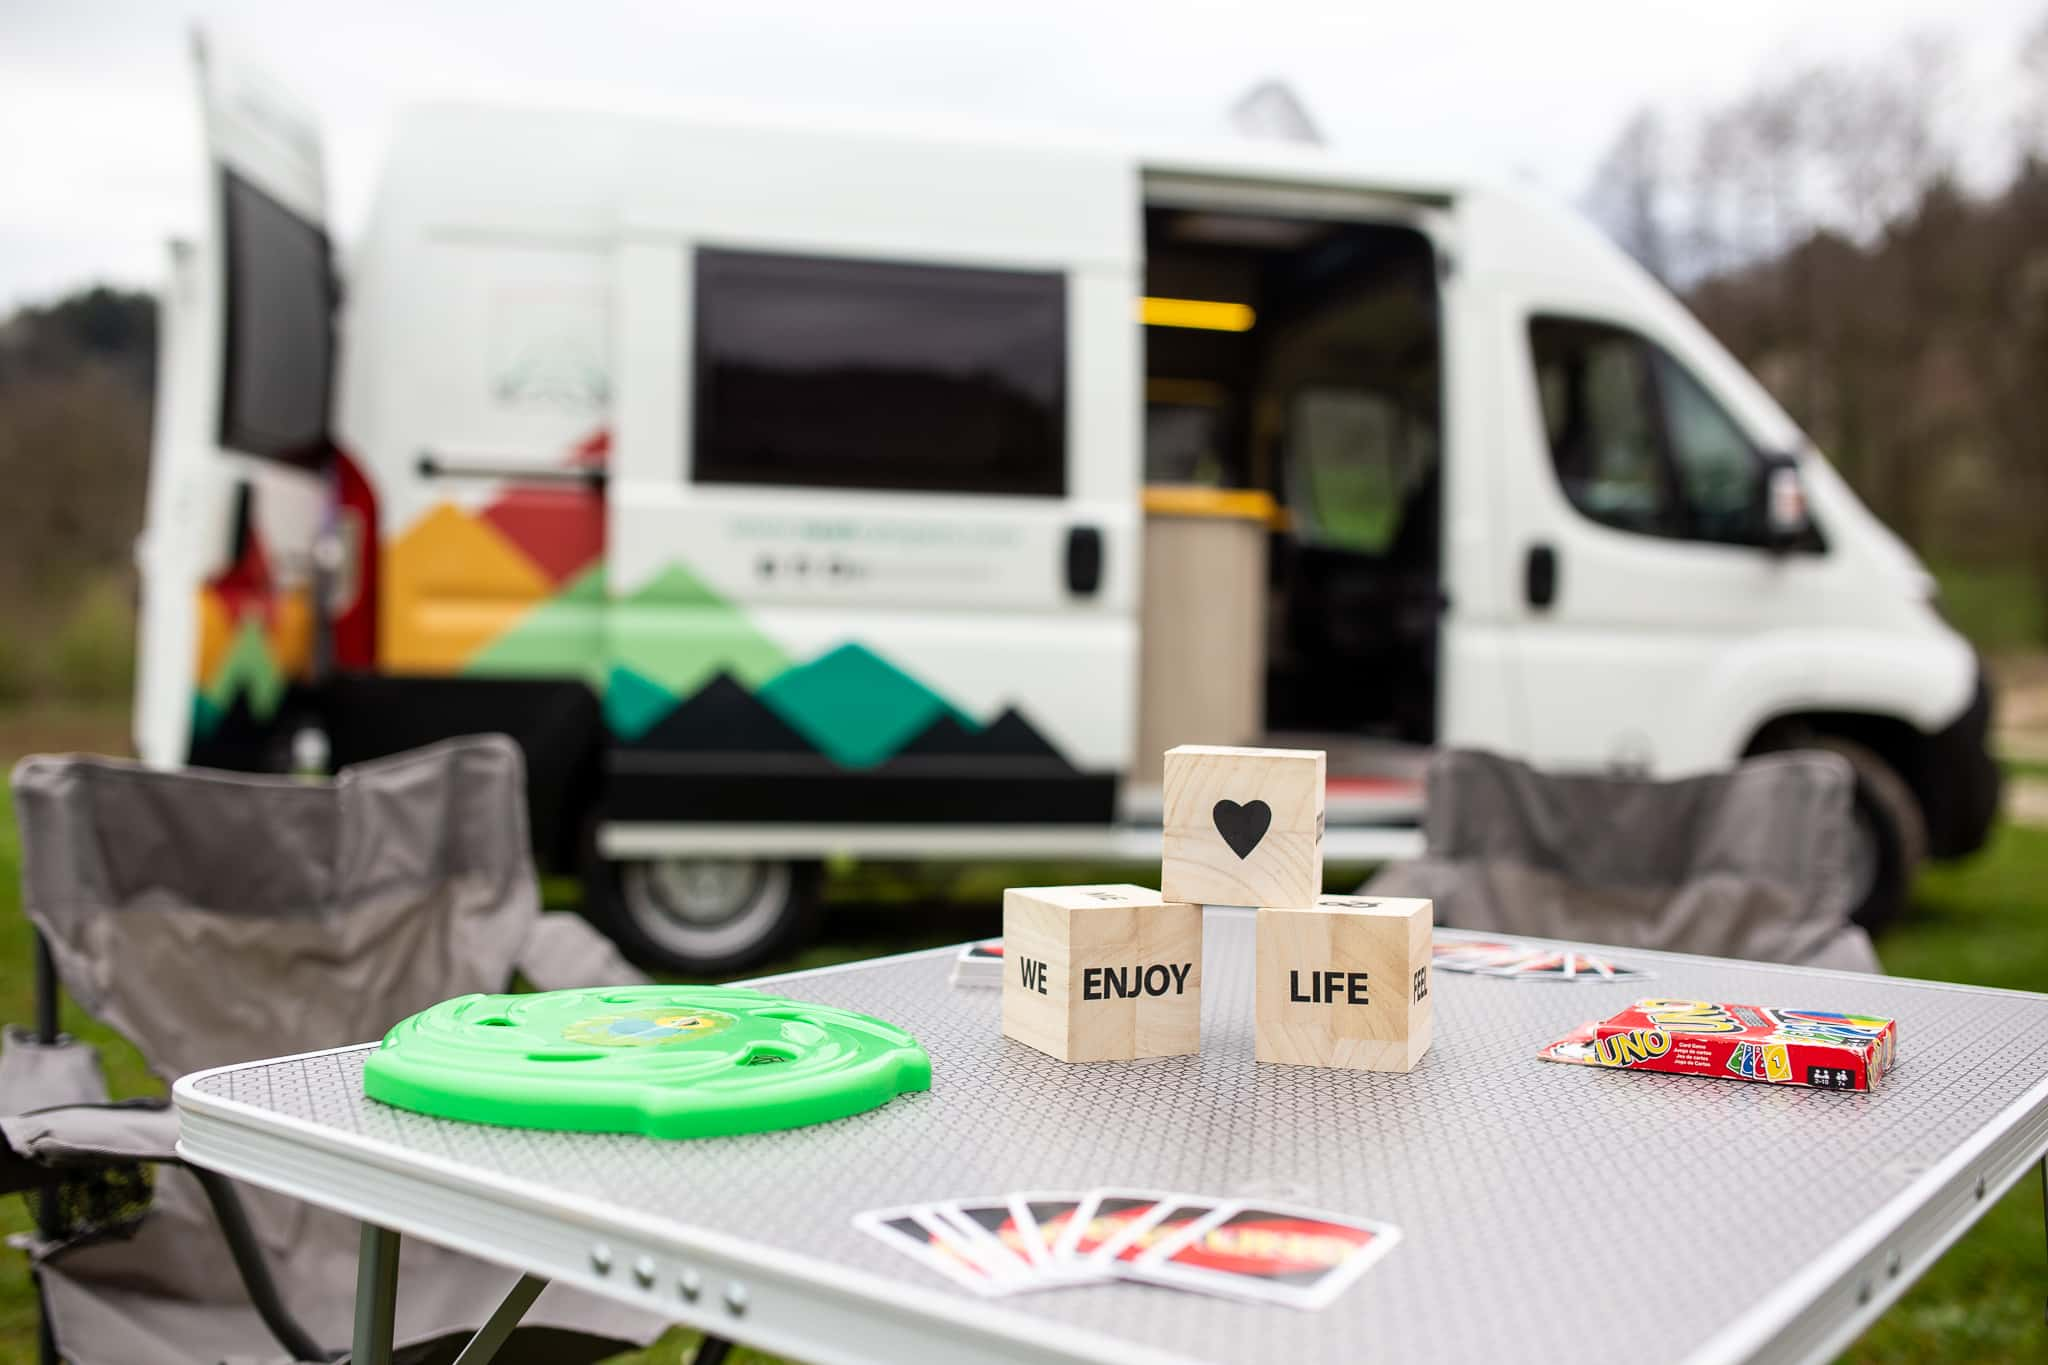 Setting up camp - large campervan and board games